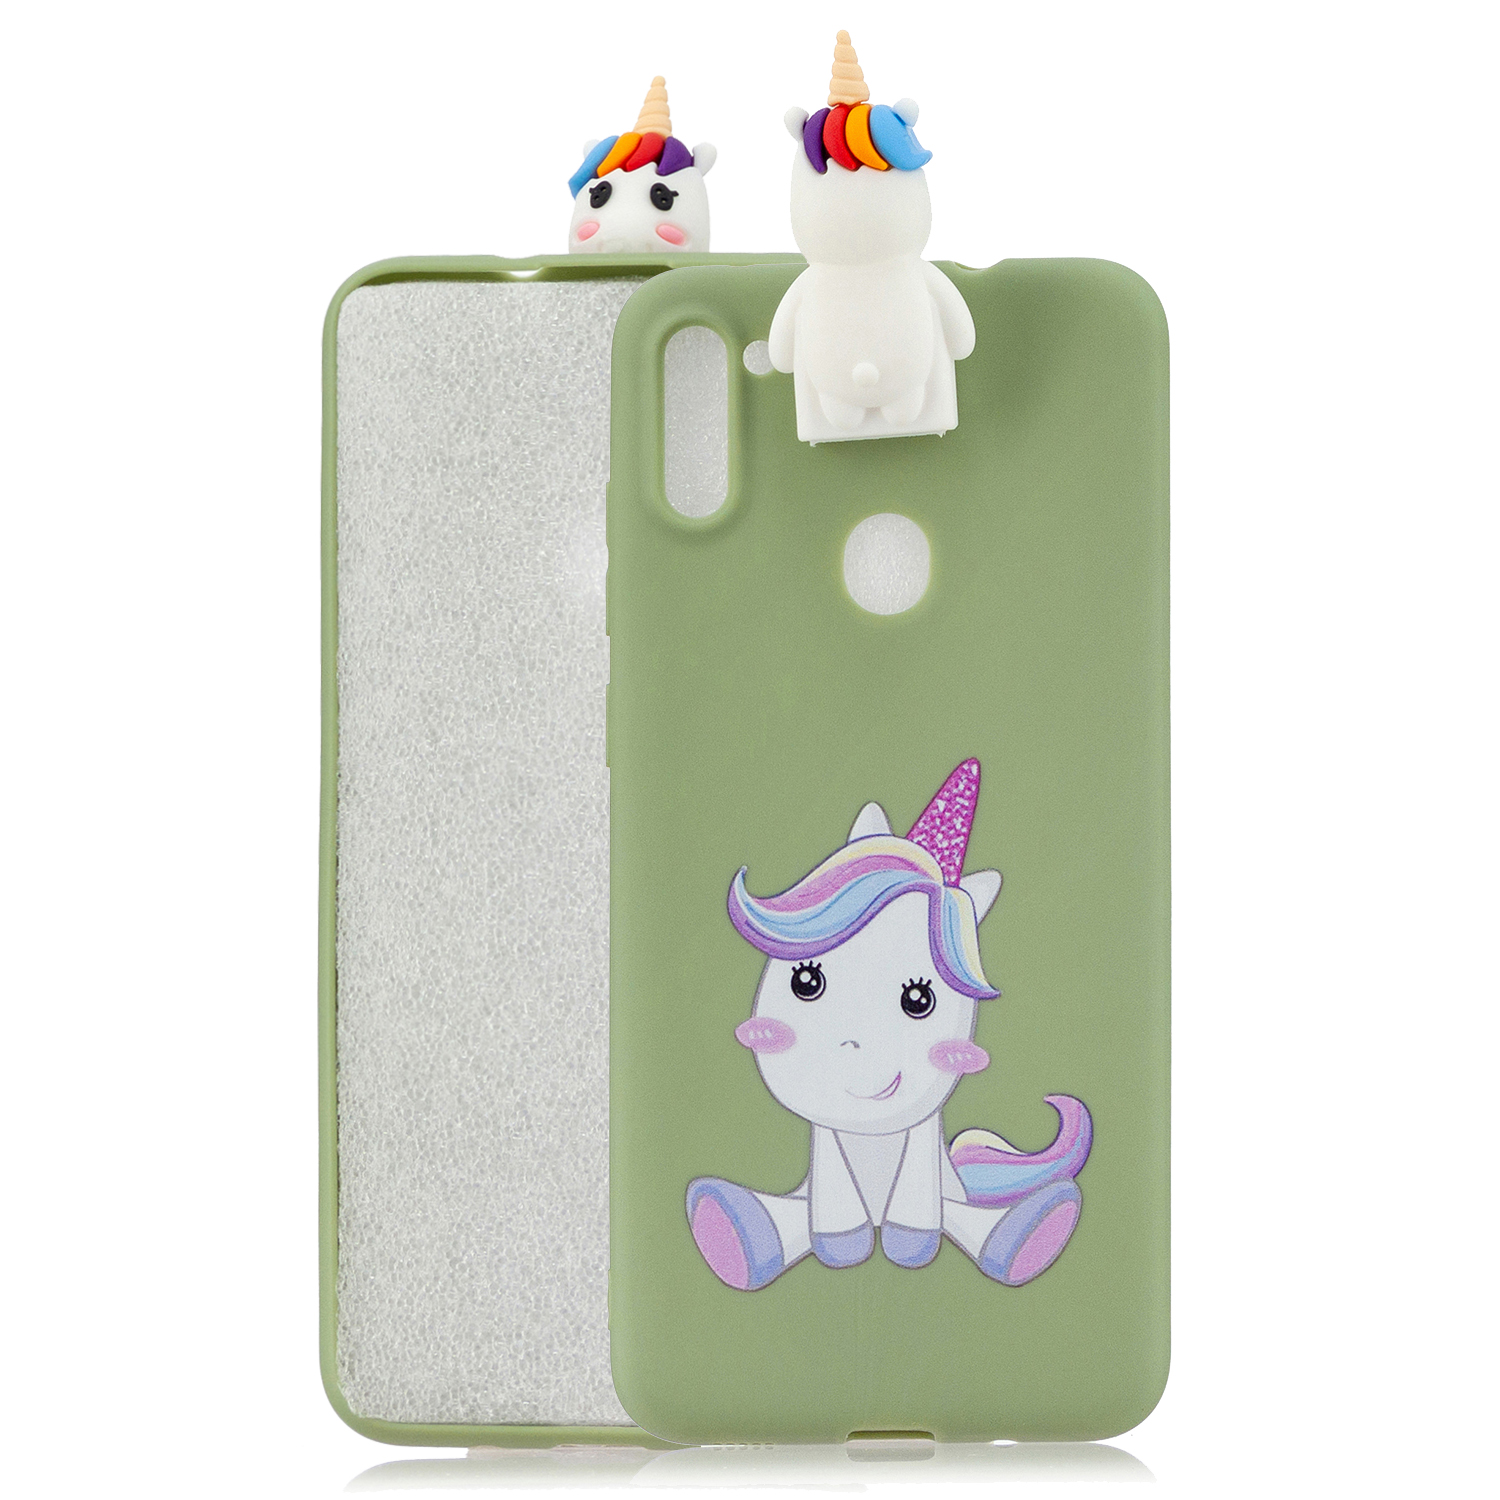 For Samsung A11 Soft TPU Back Cover Cartoon Painting Mobile Phone Case Shell with Bracket Cute Horse